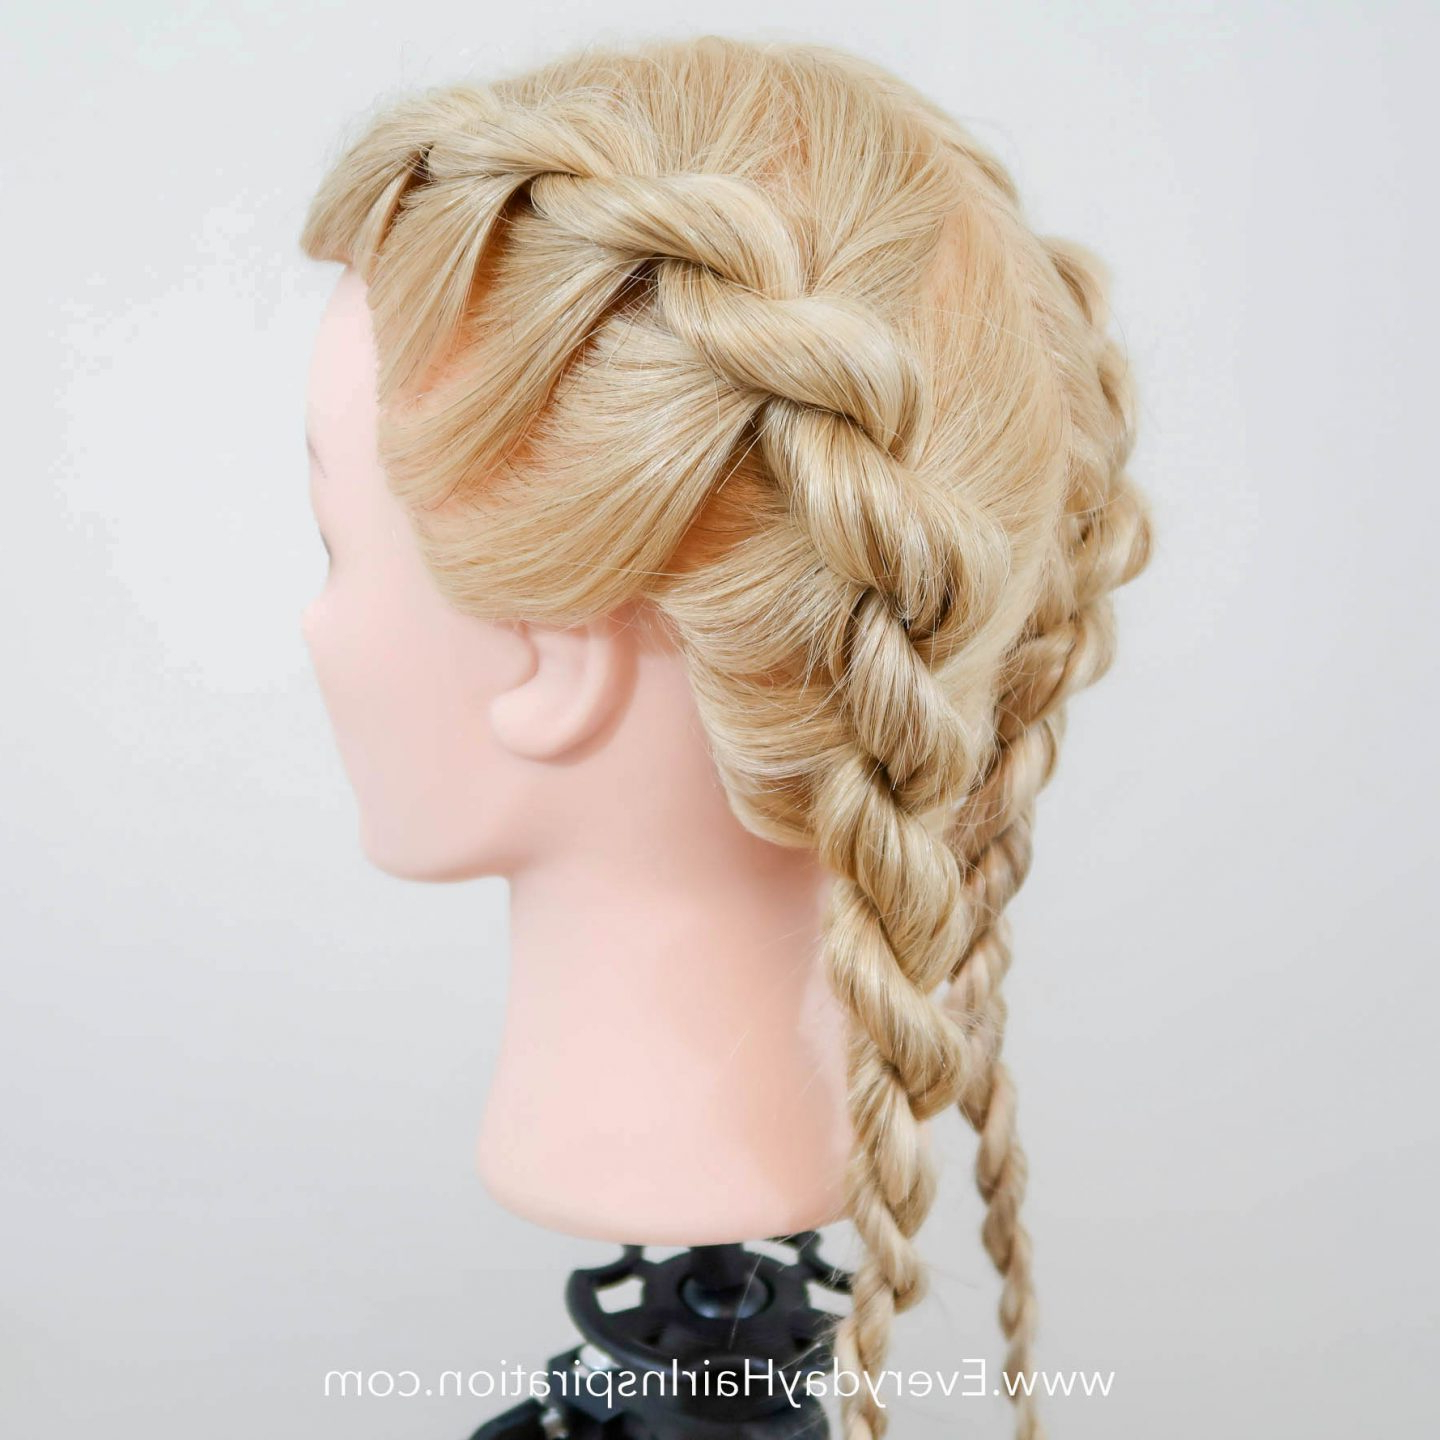 2020 Rope And Fishtail Braid Hairstyles Inside French Rope Braid Stepstep – Everyday Hair Inspiration (View 2 of 20)